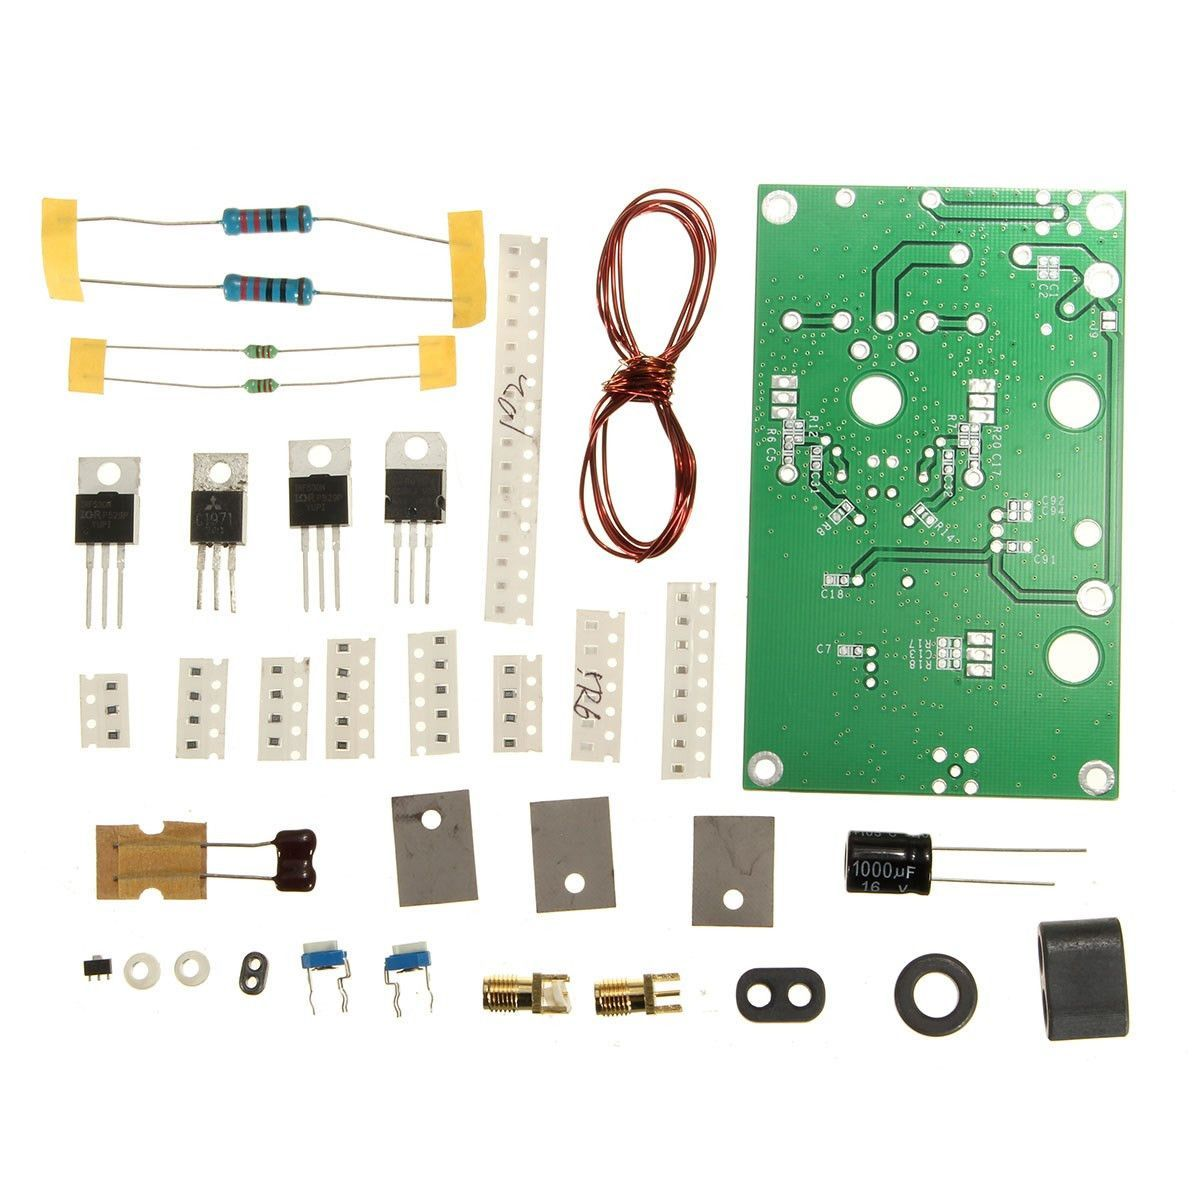 Best Promotion Upgrade 50+W SSB linear Power Amplifier Kits for transceiver Radio HF FM CW HAM Wholesale price